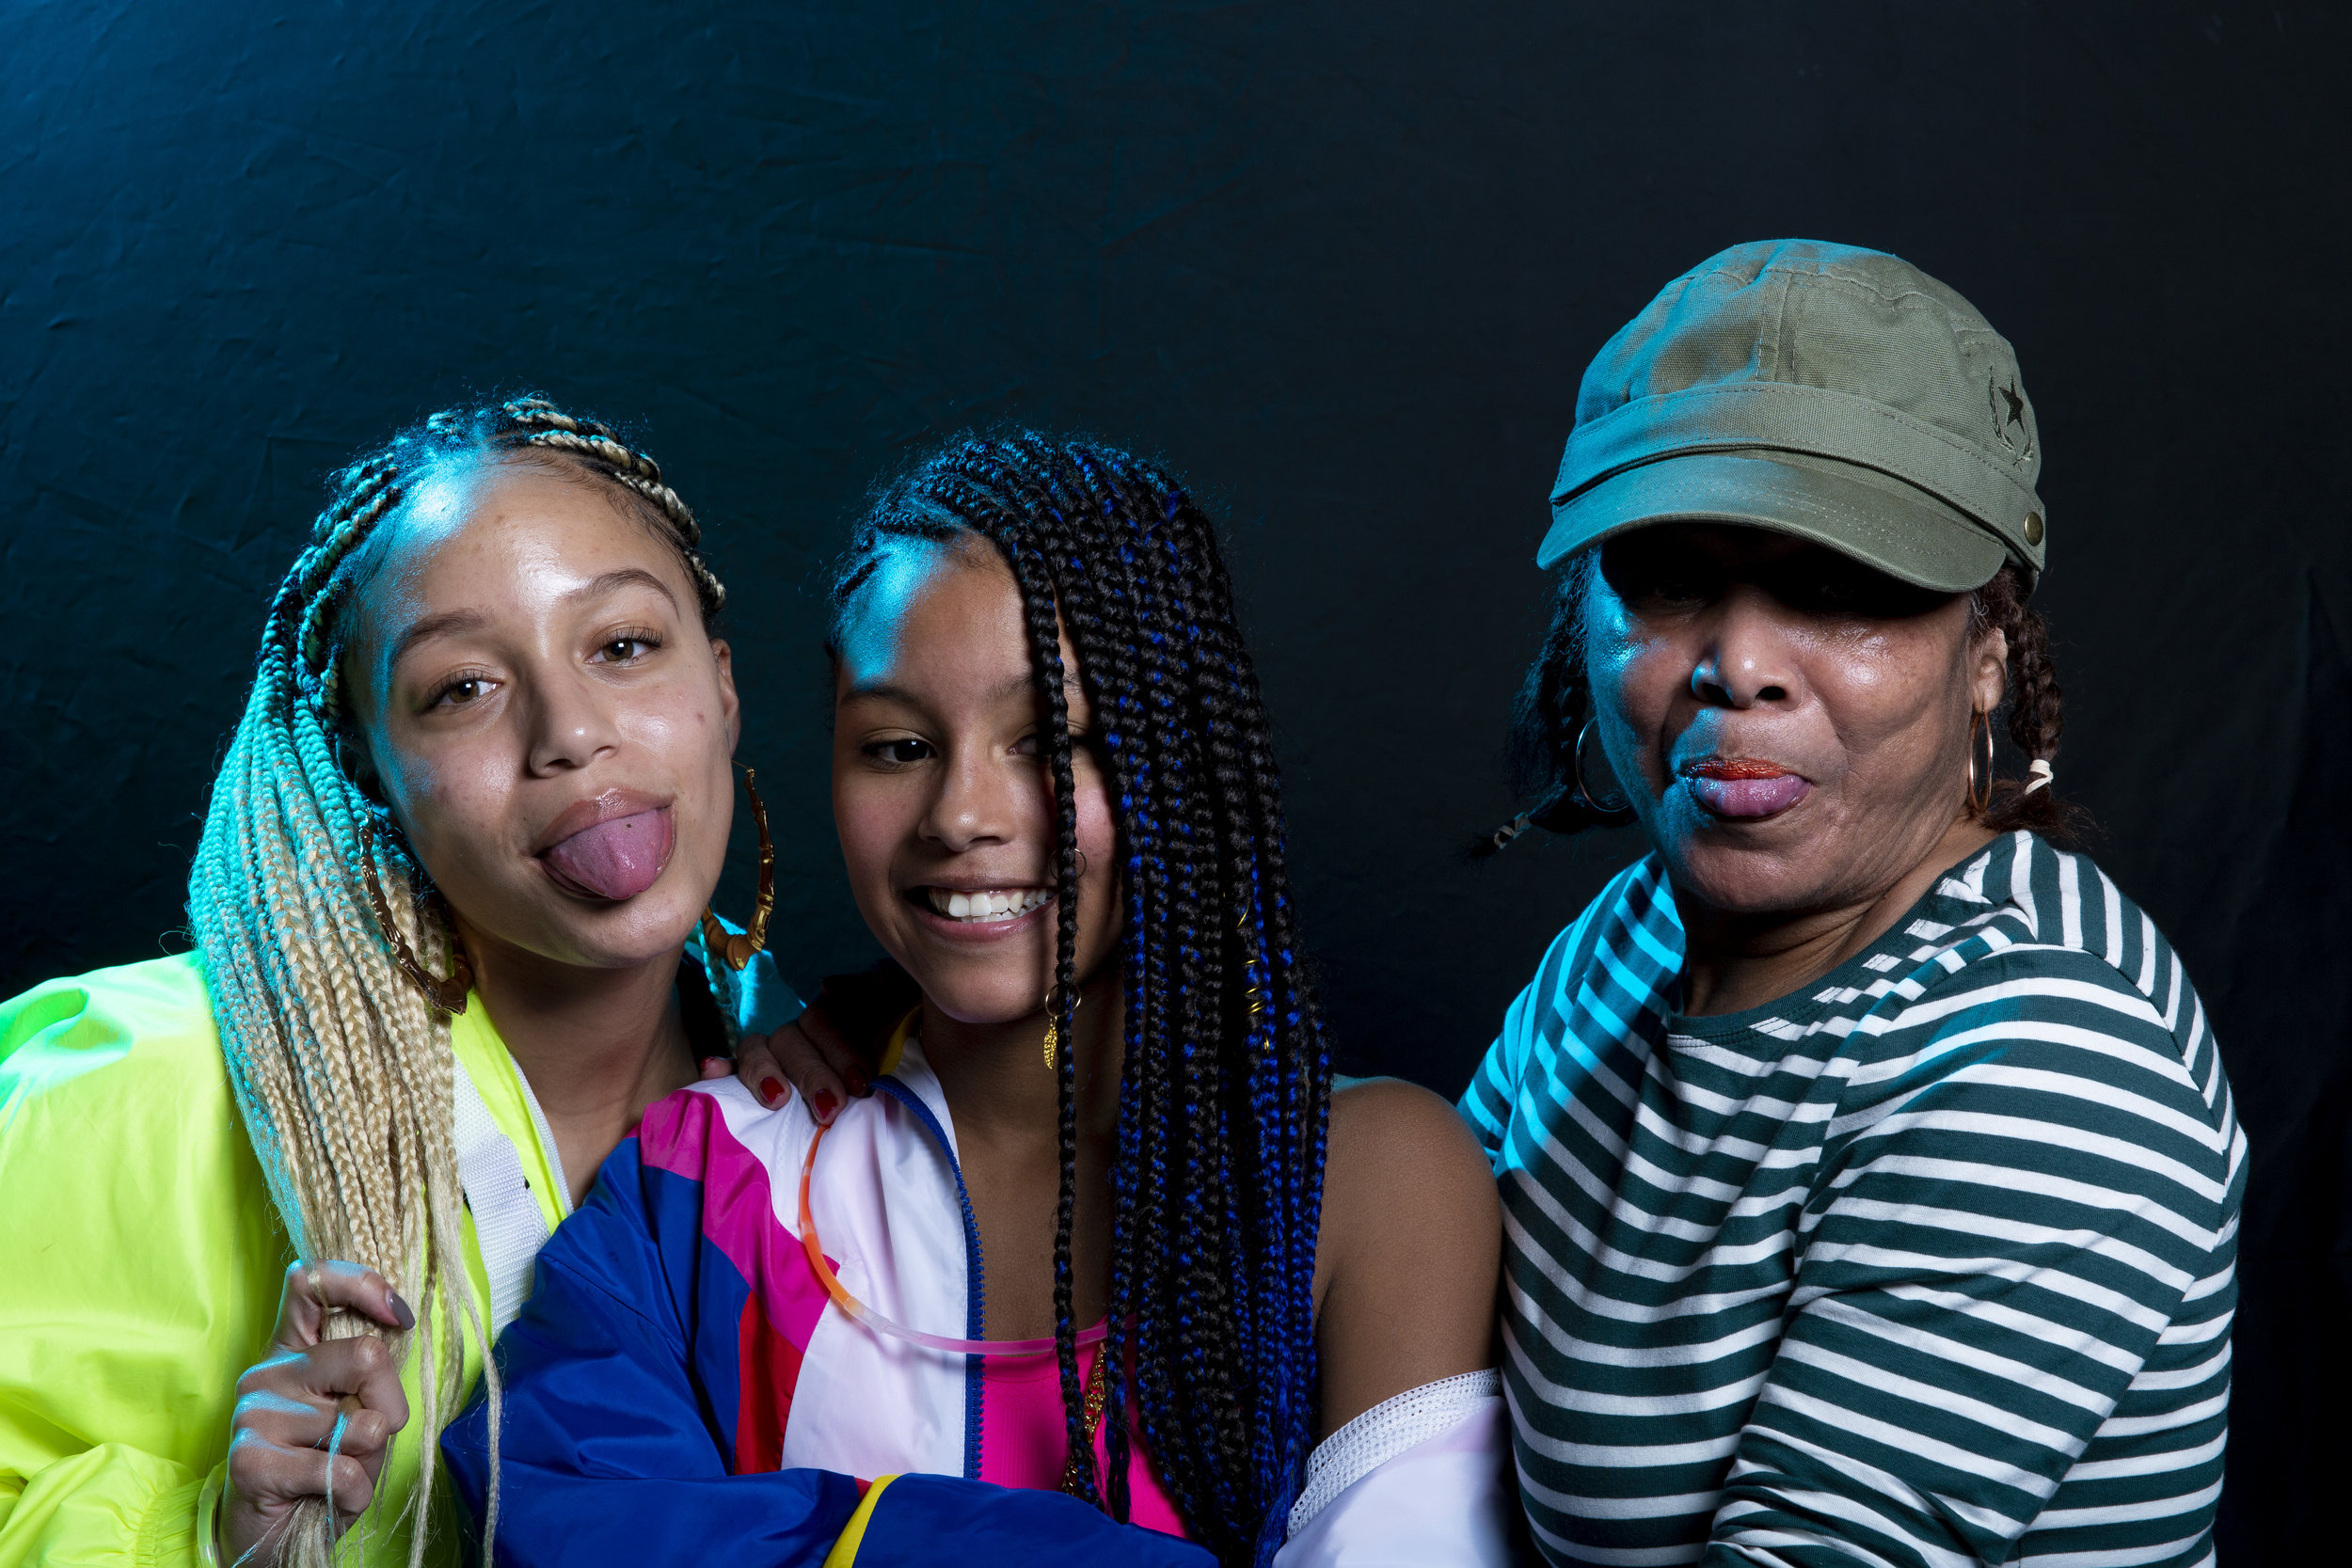 02-16-19 Kiana Hall  edits done-Giovanni The Photographer-Boston Photo Booth Rental-Cambridge_28.jpg